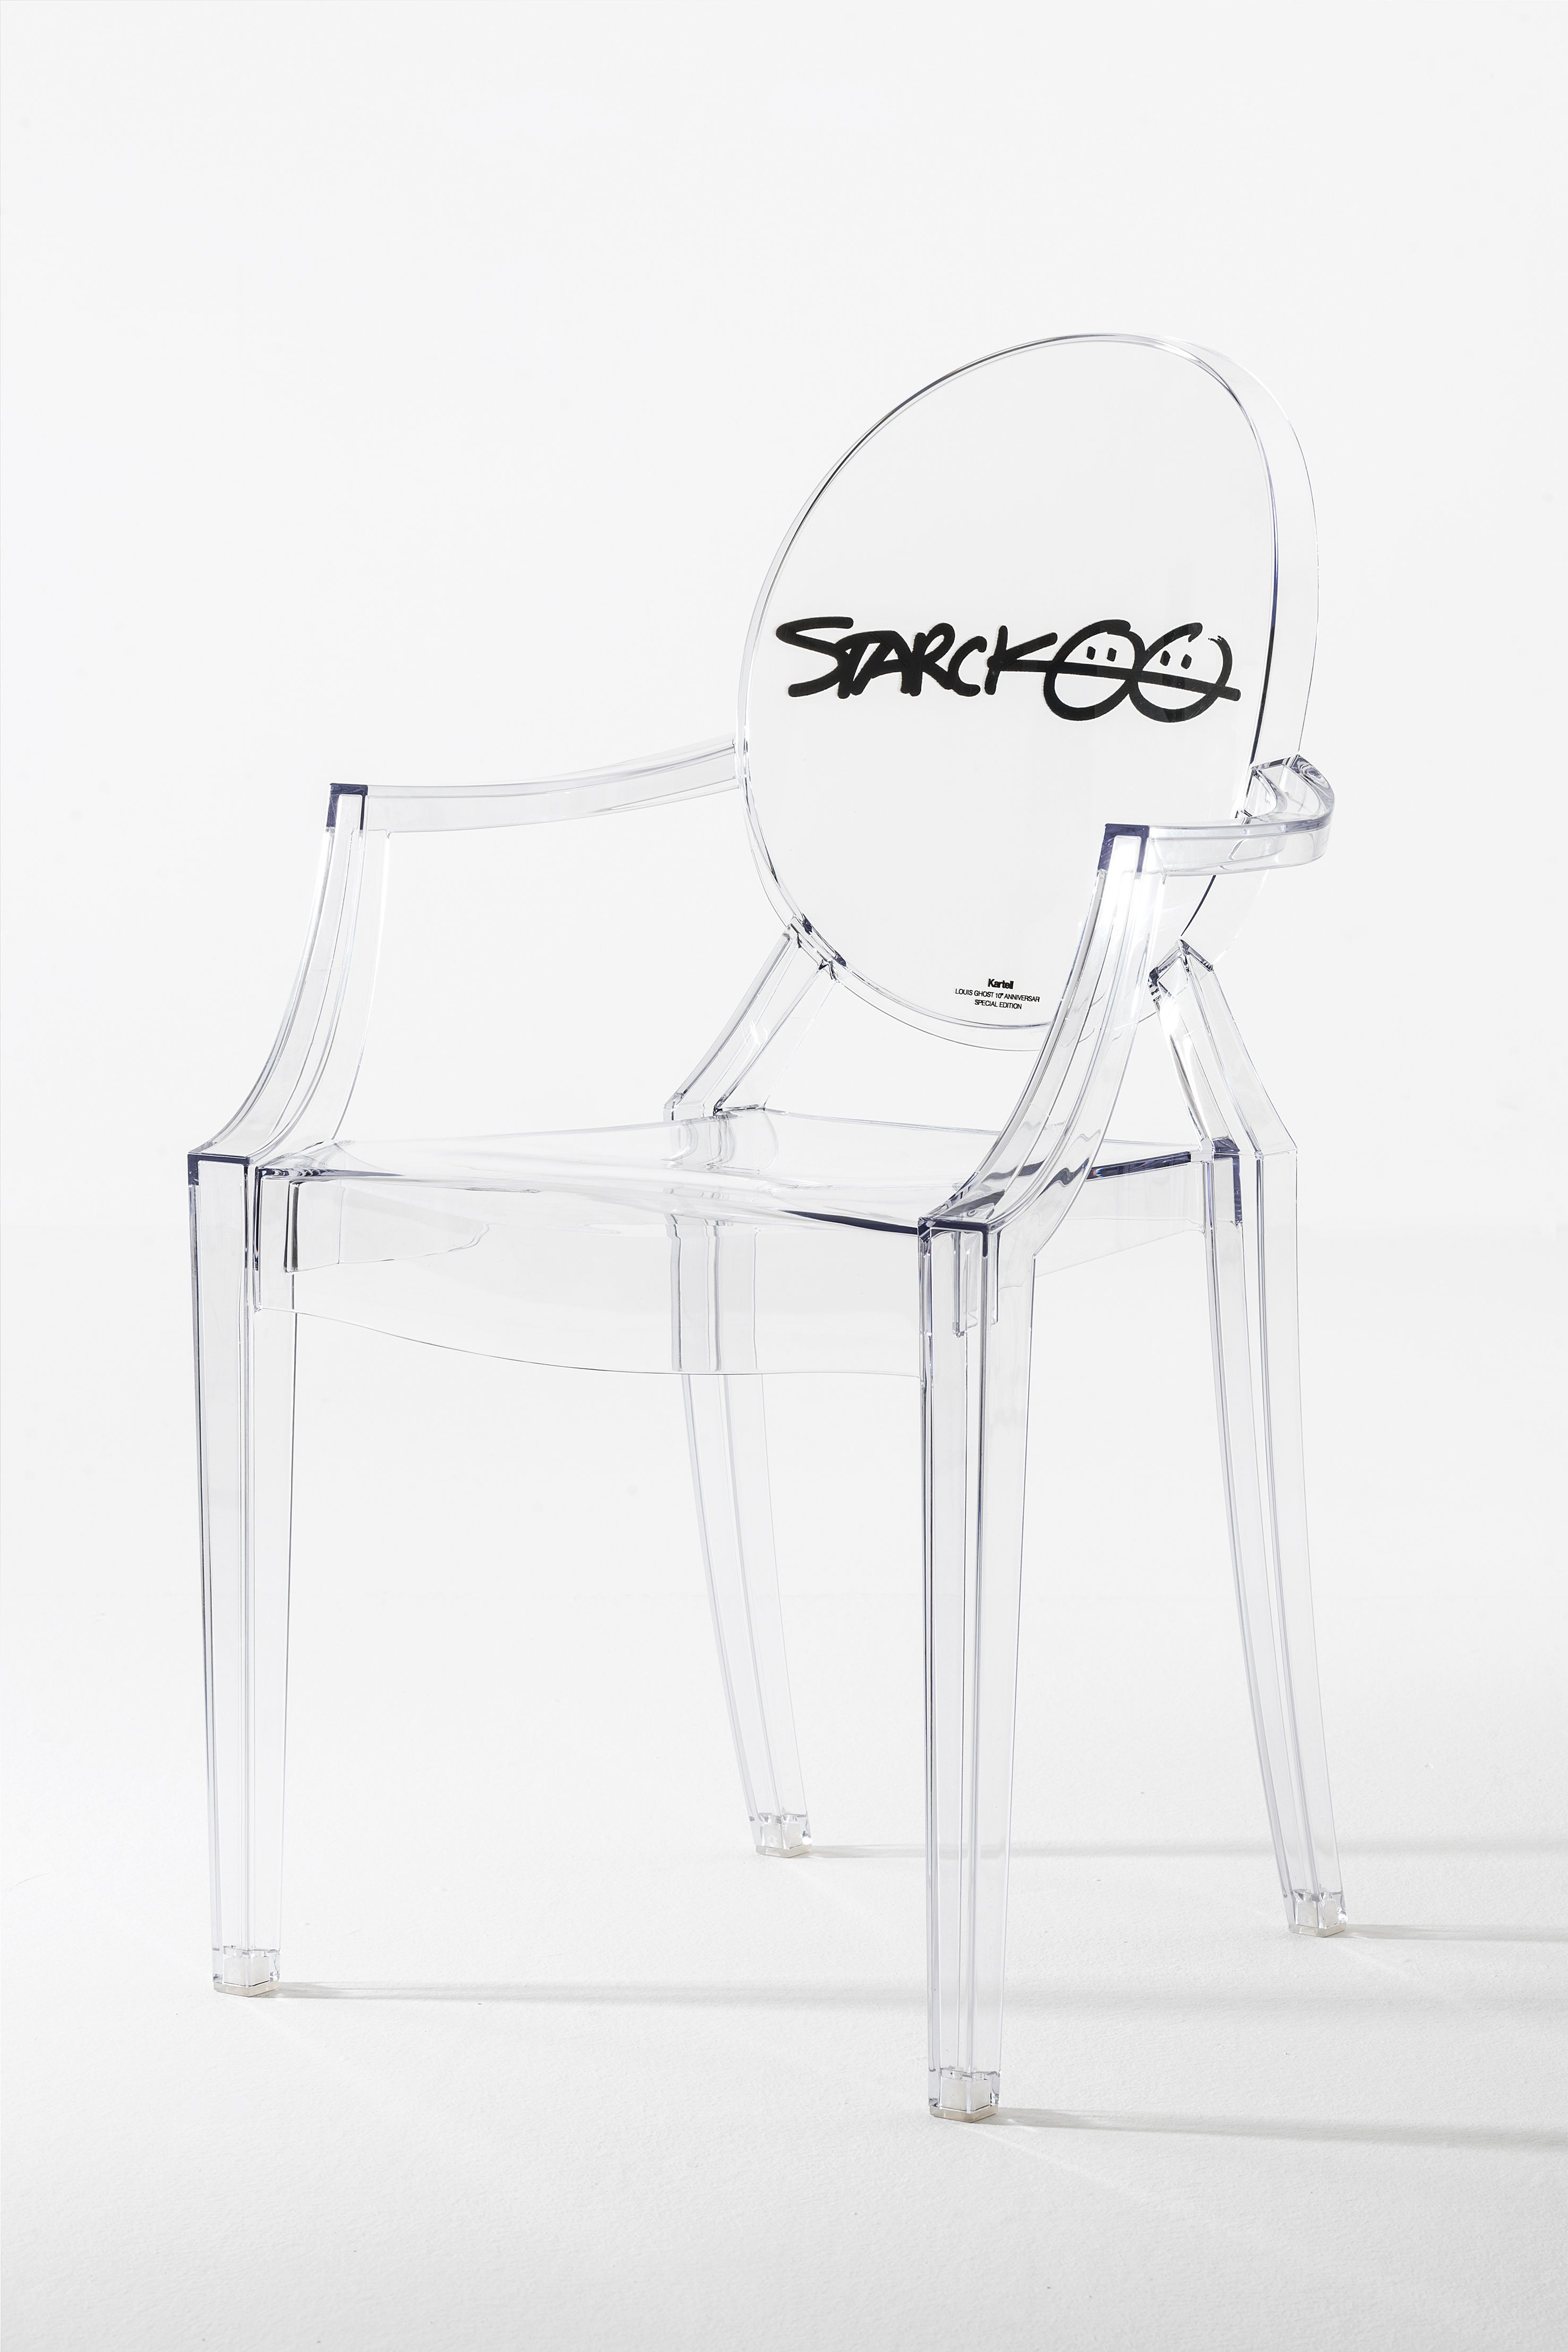 Fauteuil Louis Ghost De Philippe Starck louis ghost special edition 10th anniversary - kartell